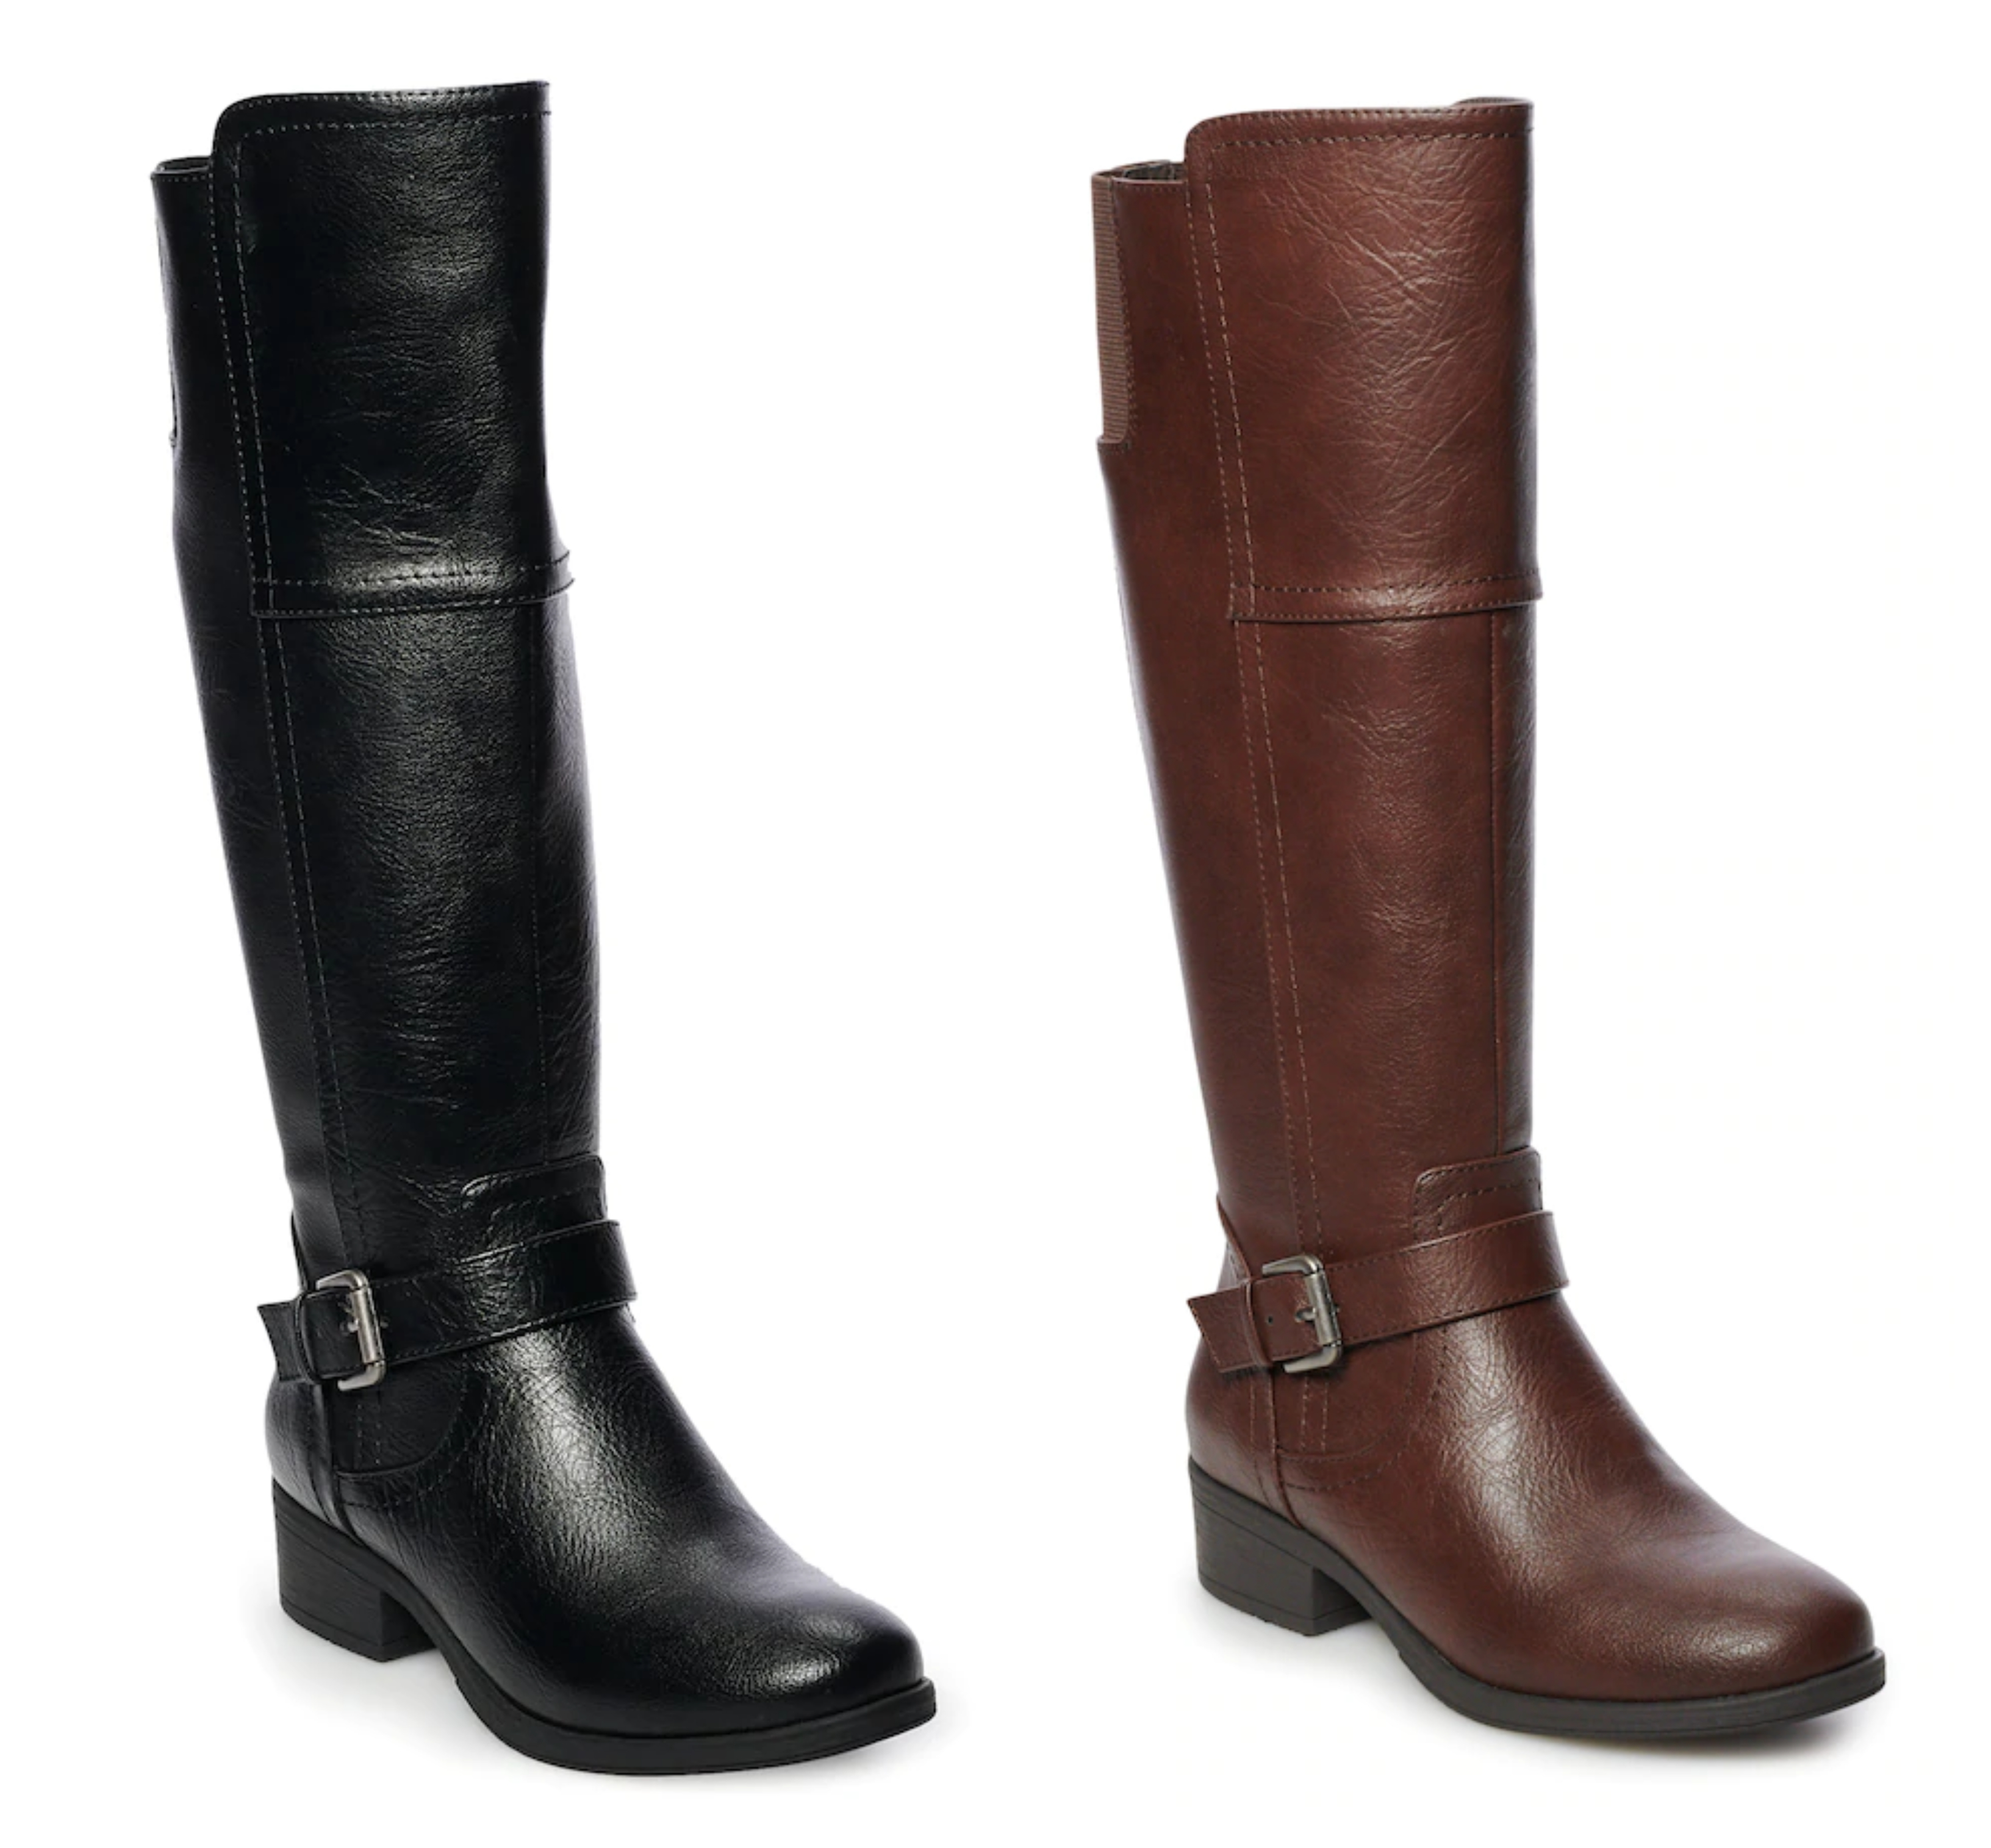 e698ab146a1 Kohl's: Riding Boots – only $38 (reg $80) – Awesome Reviews! – Wear ...